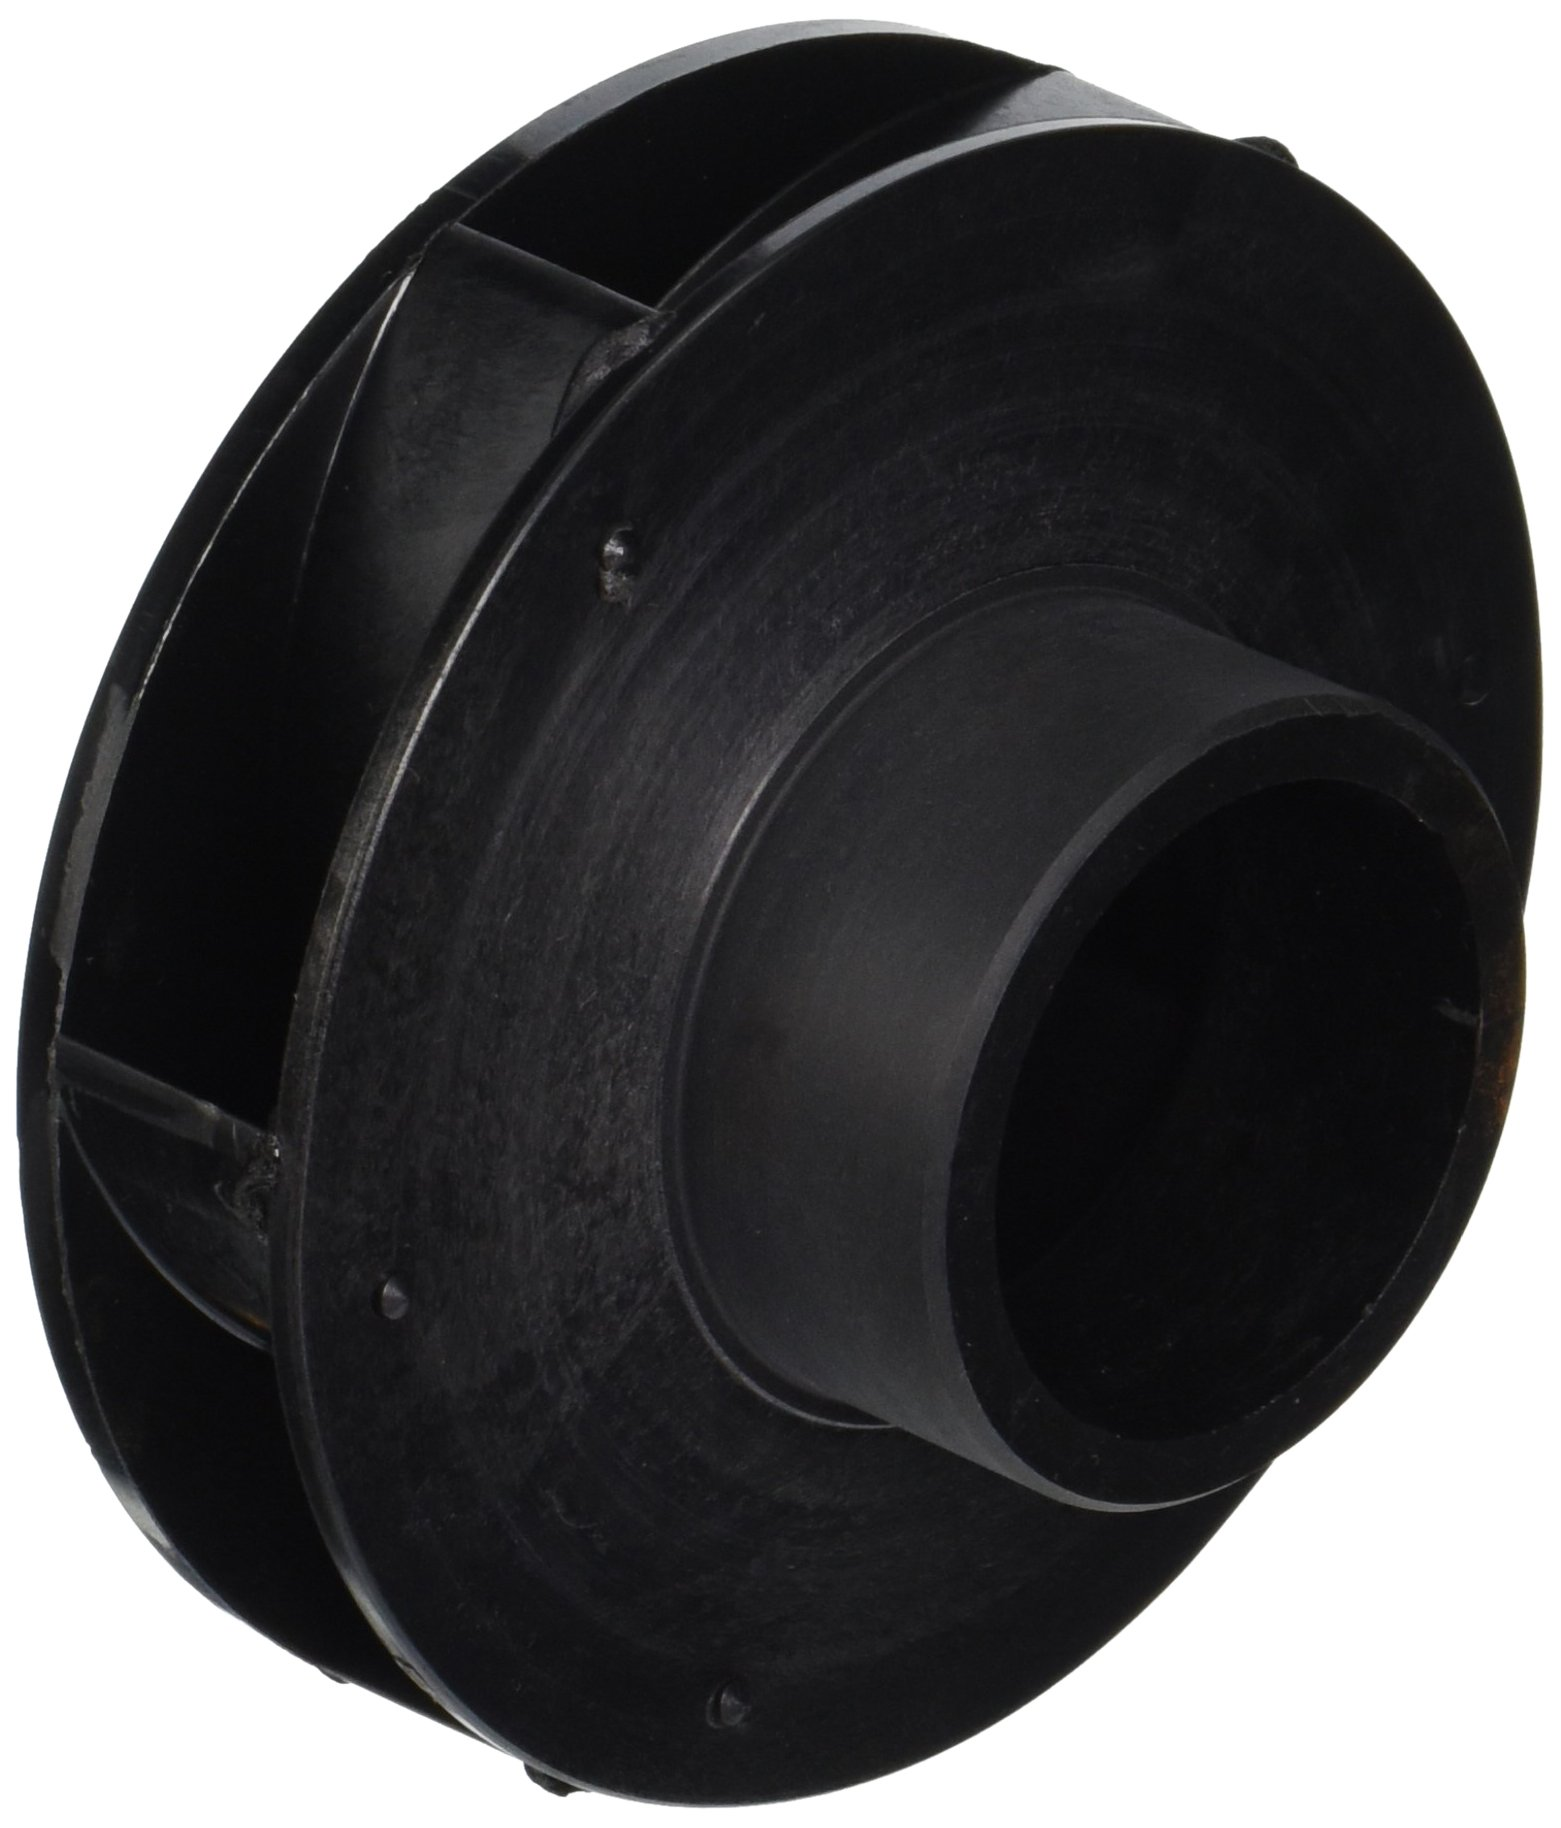 Hayward SPX1525CH High Performance Impeller Replacement for Hayward Abg and Power-Flo Pumps, 2-HP